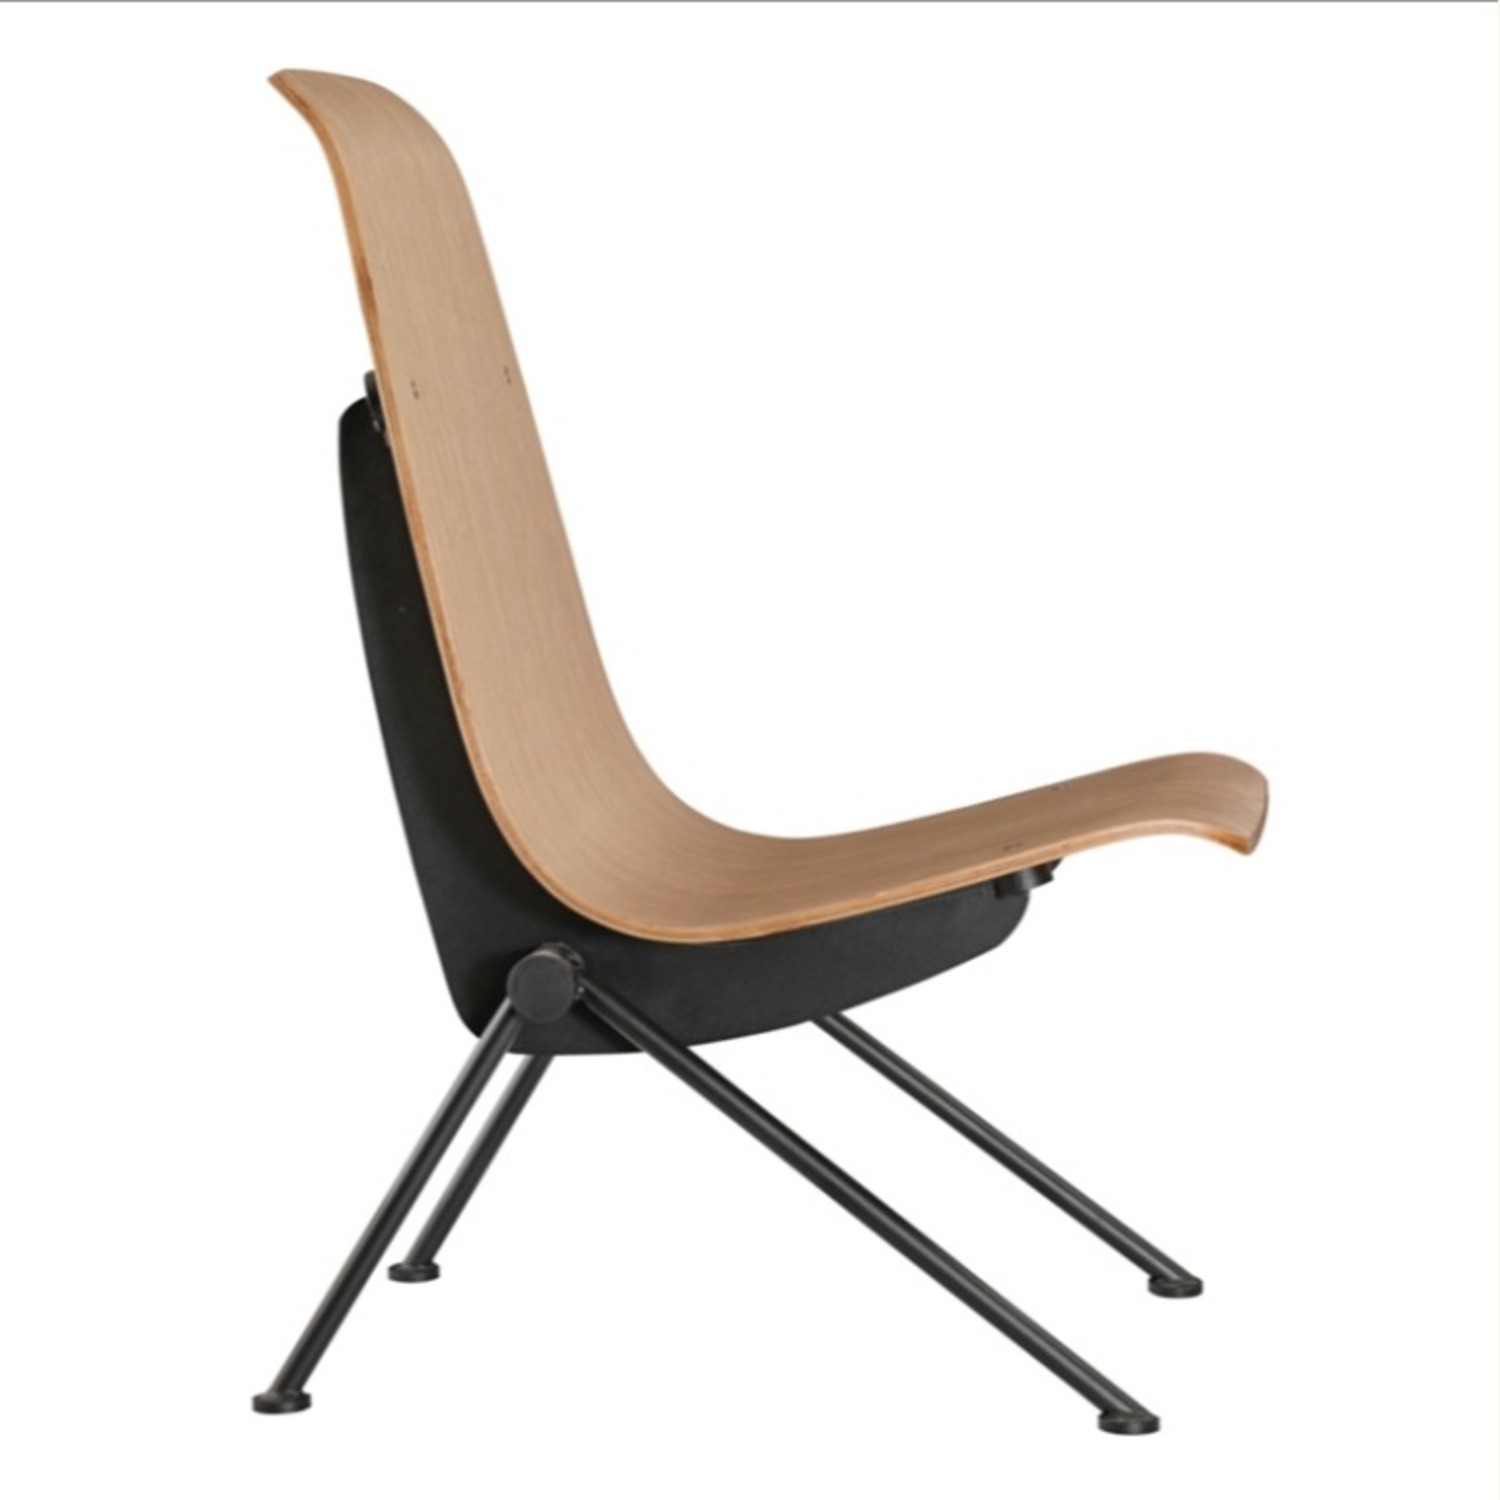 Contemporary Side Chair Crafted In Natural Plywood - image-1